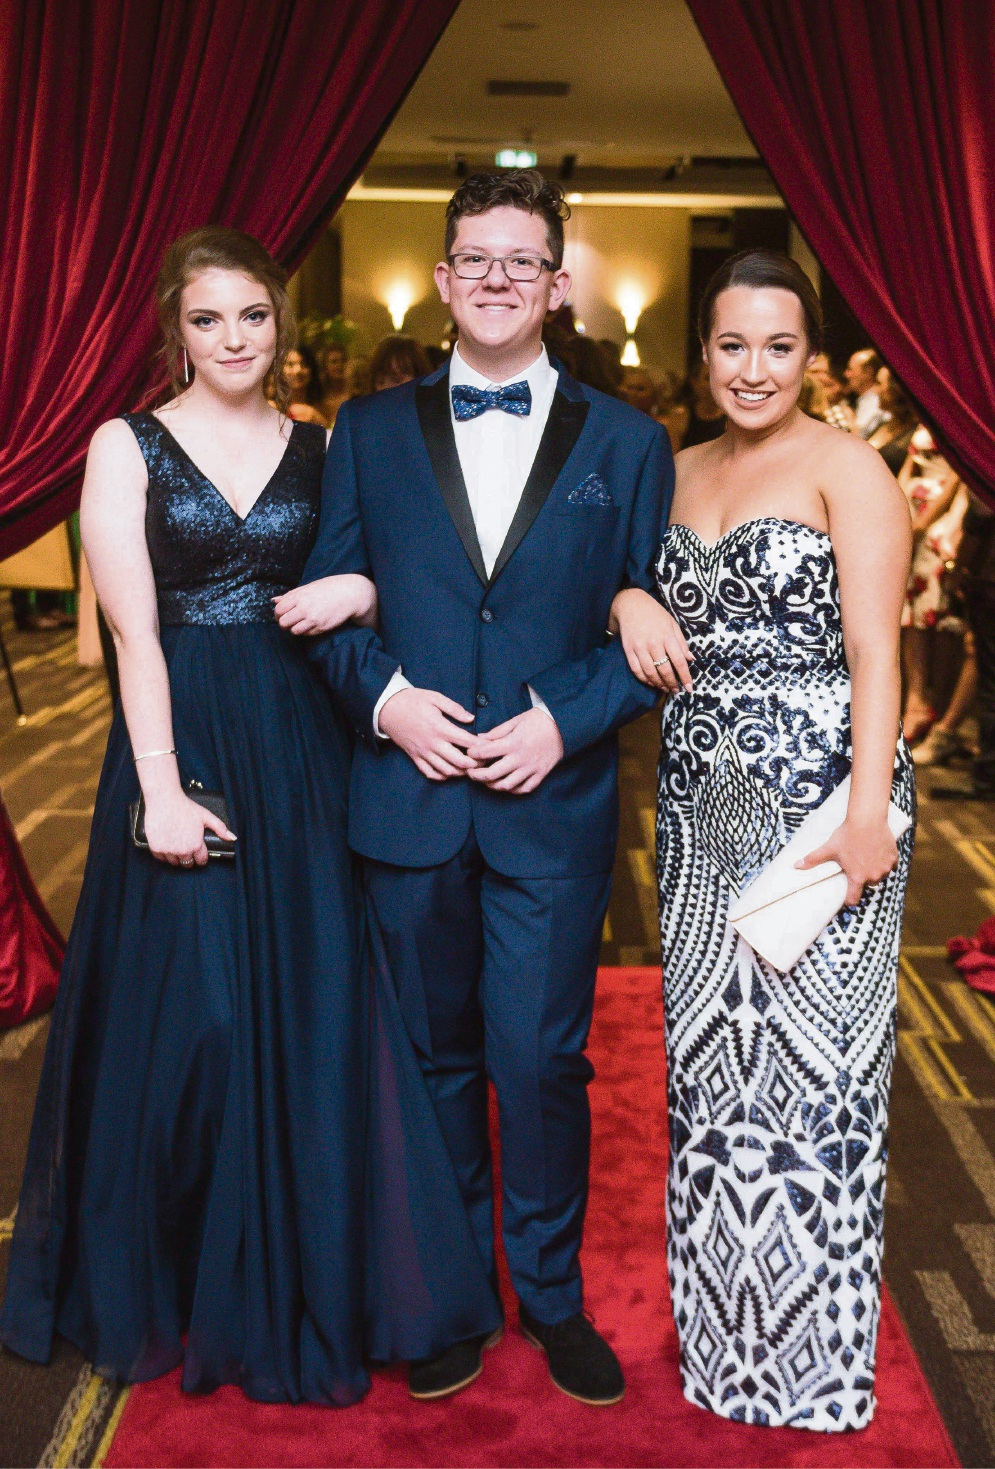 Mackenzie Hagen, Taymar Gordon and Emily Magee. Pictures: Event Photography